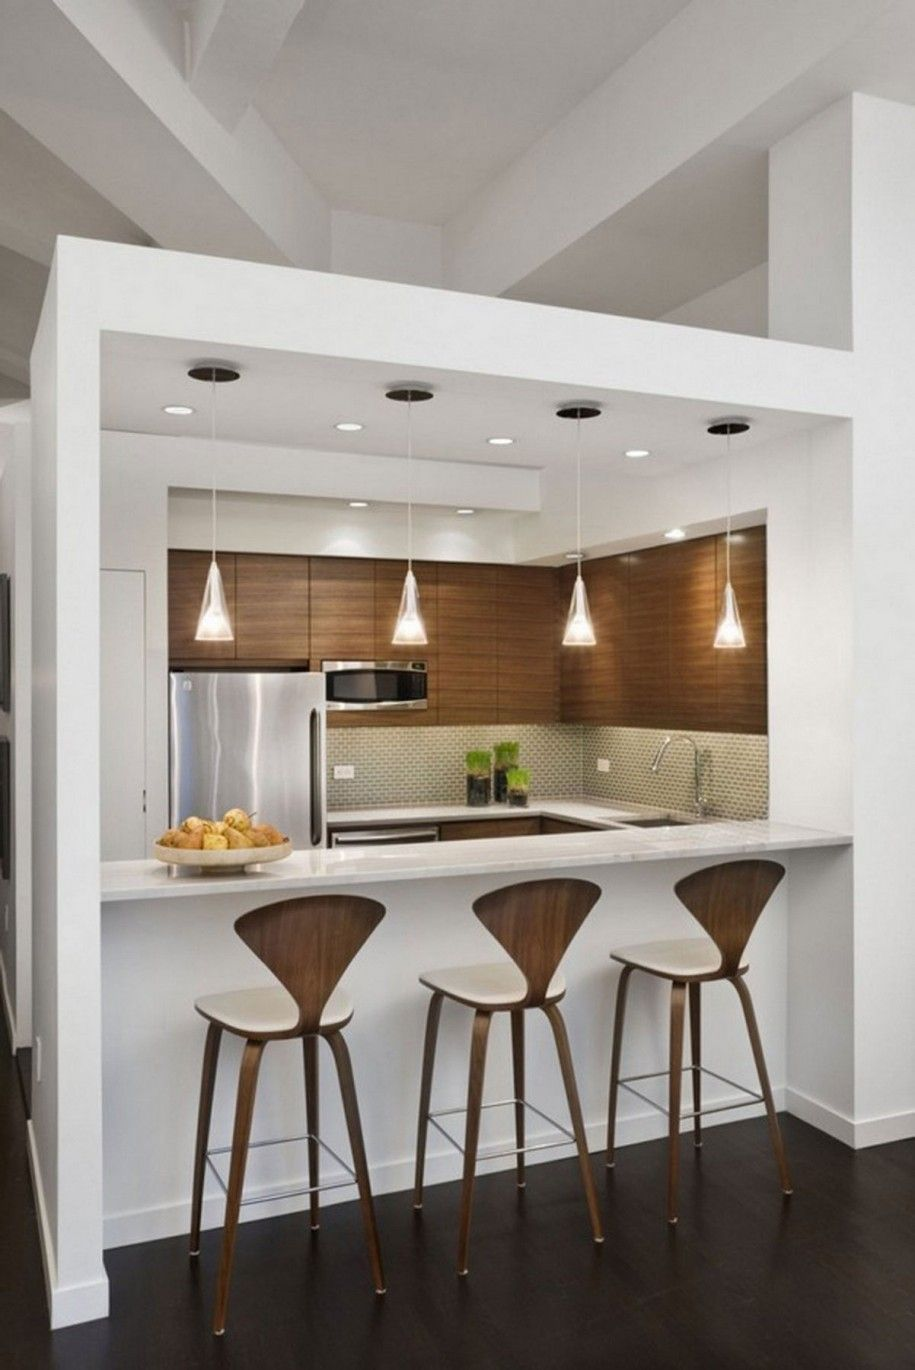 Best Fixture Of Kitchen Decorating Ideas: Mini Bar Small Kitchen Decoration  Ideas Modern House Beams Ceiling ~ Emsorter.com Kitchen Designs Inspiration